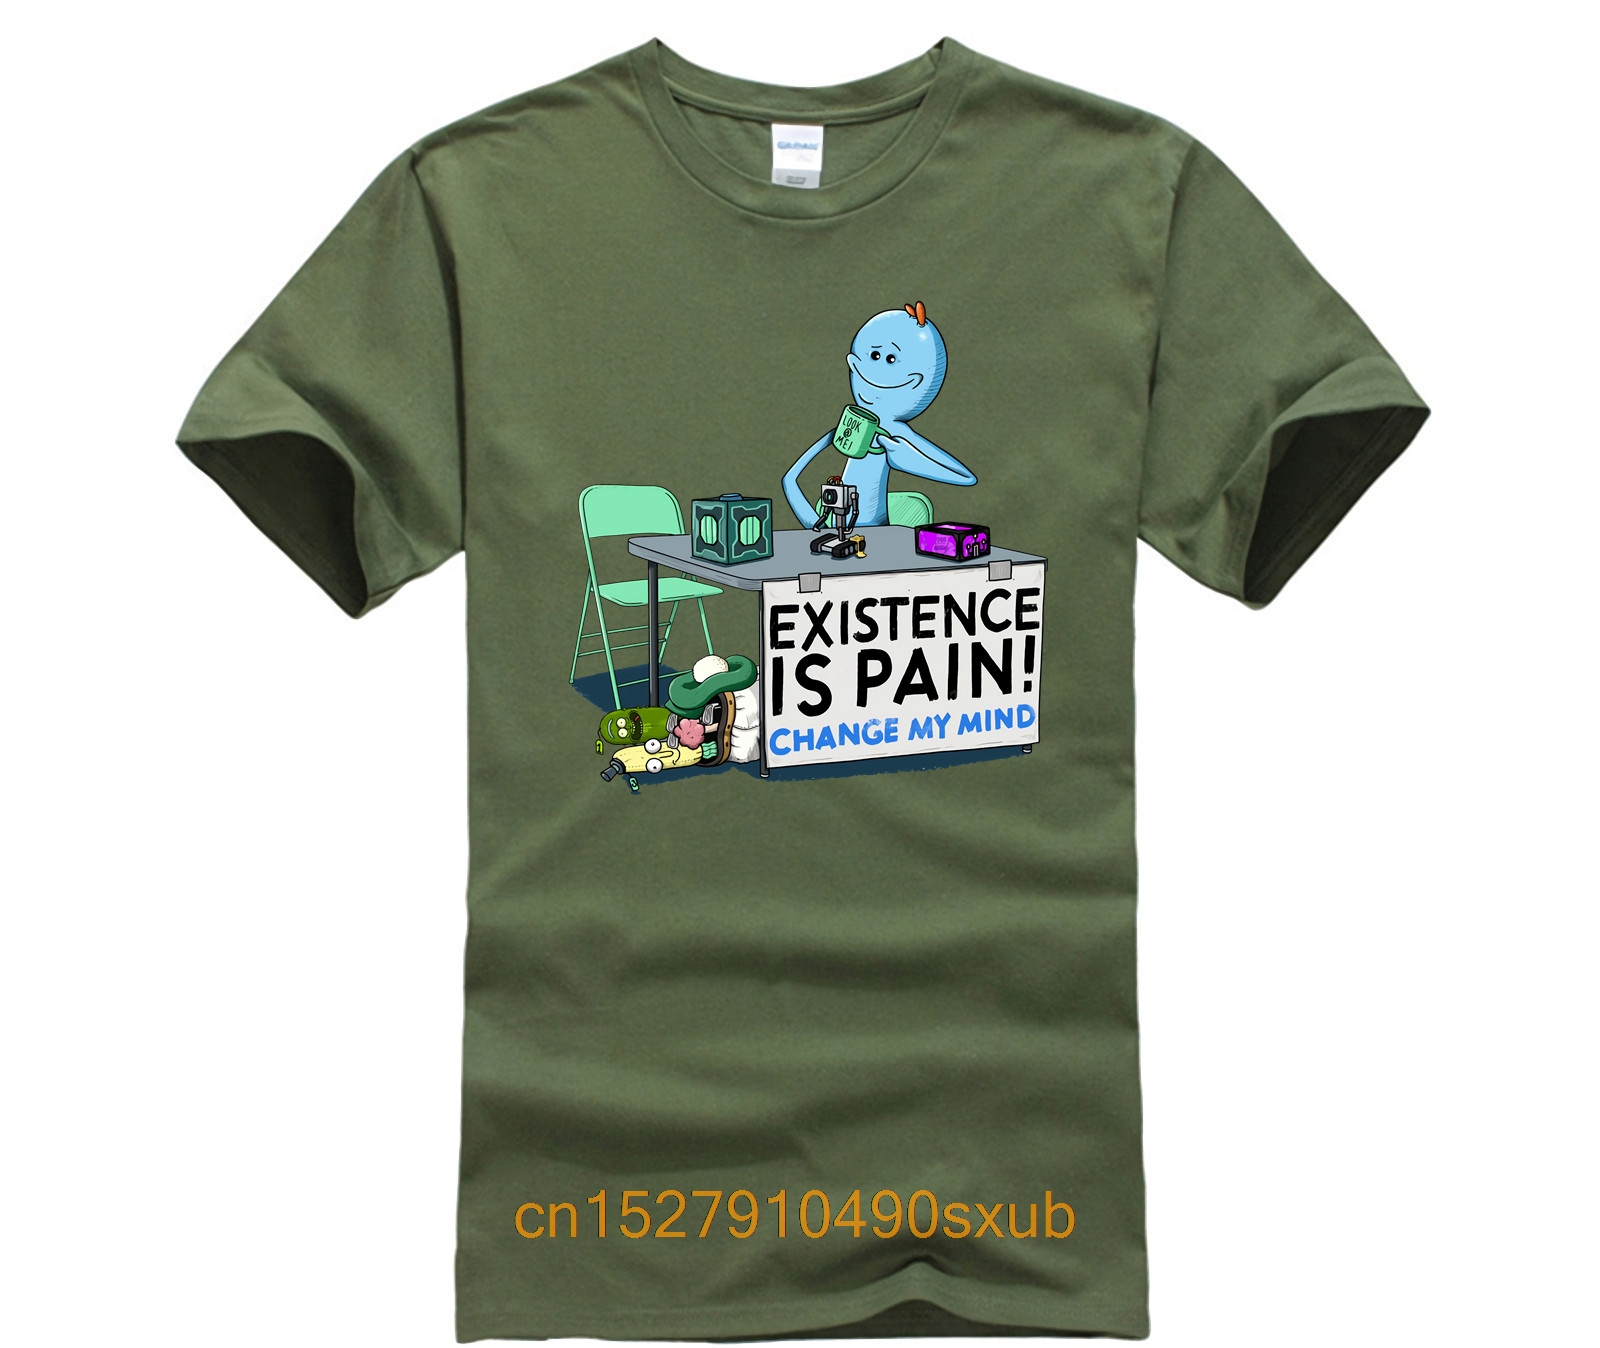 Hot men's fun casual print T-shirt EXISTENCE IS PAIN CHANGE MY MIND T Shirt